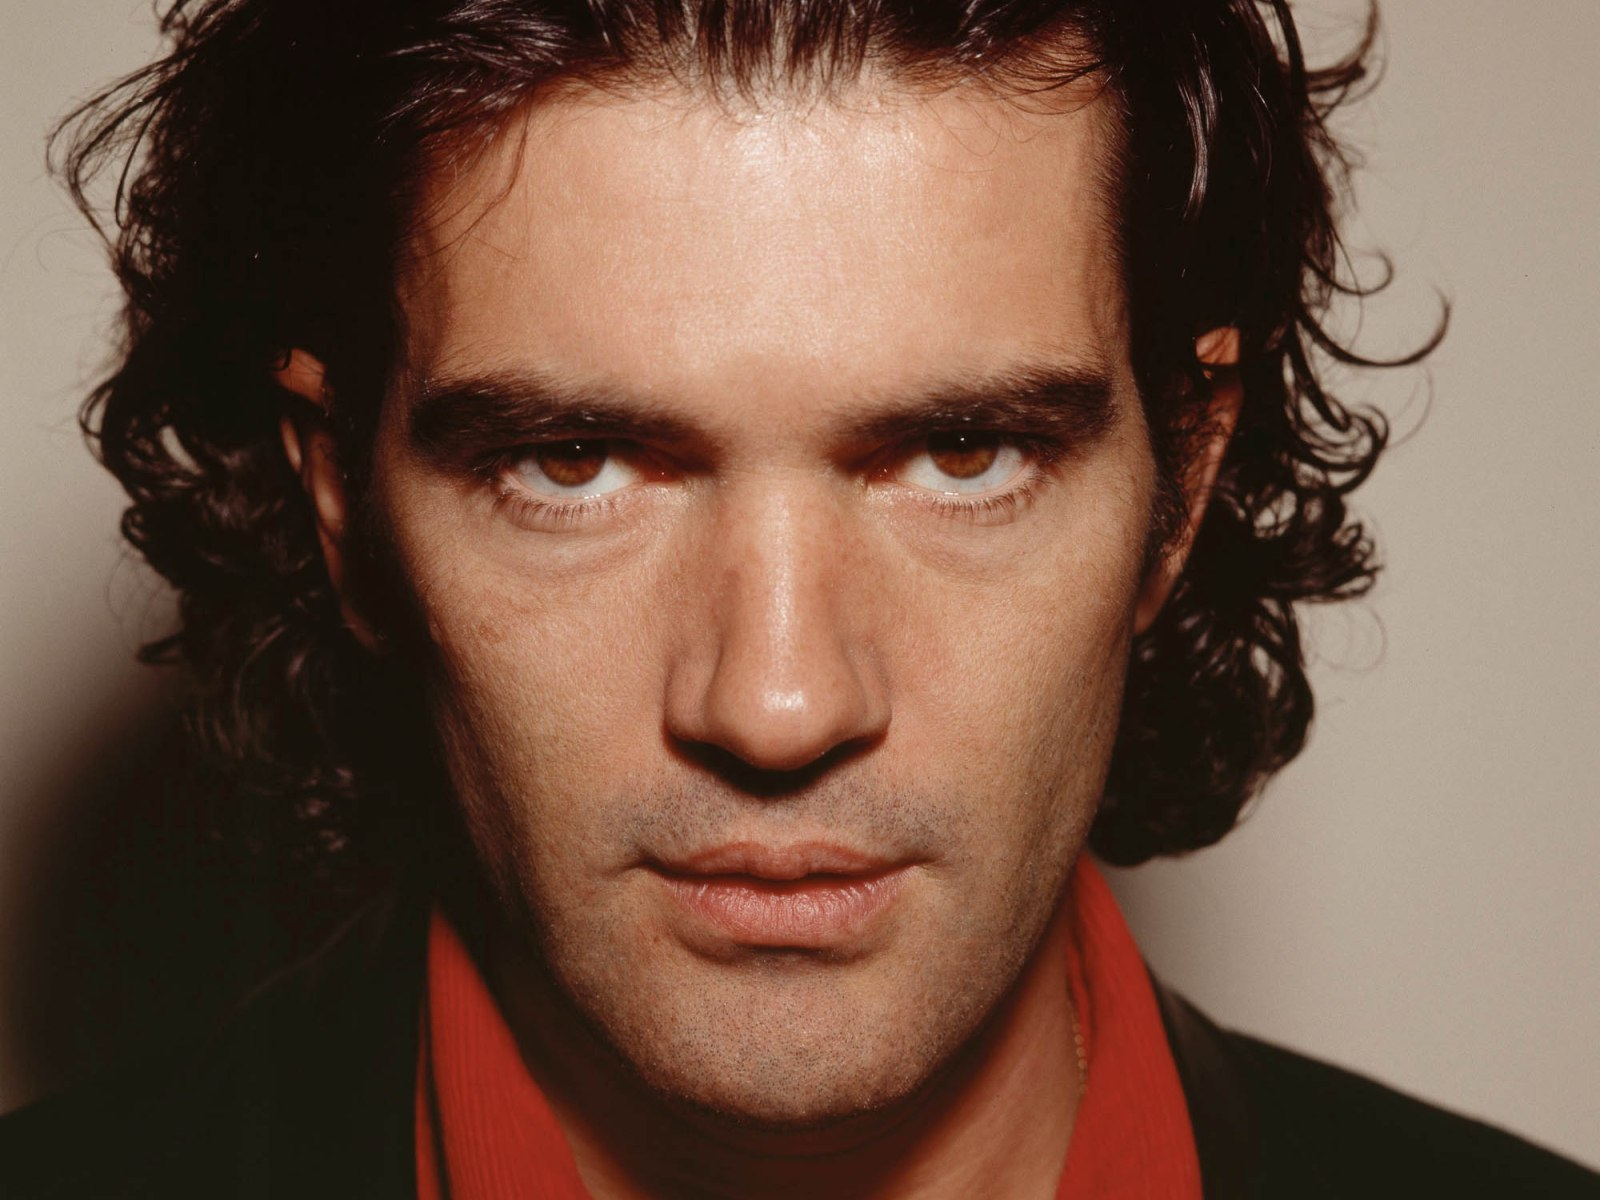 antonio banderas face wallpaper pictures 52106